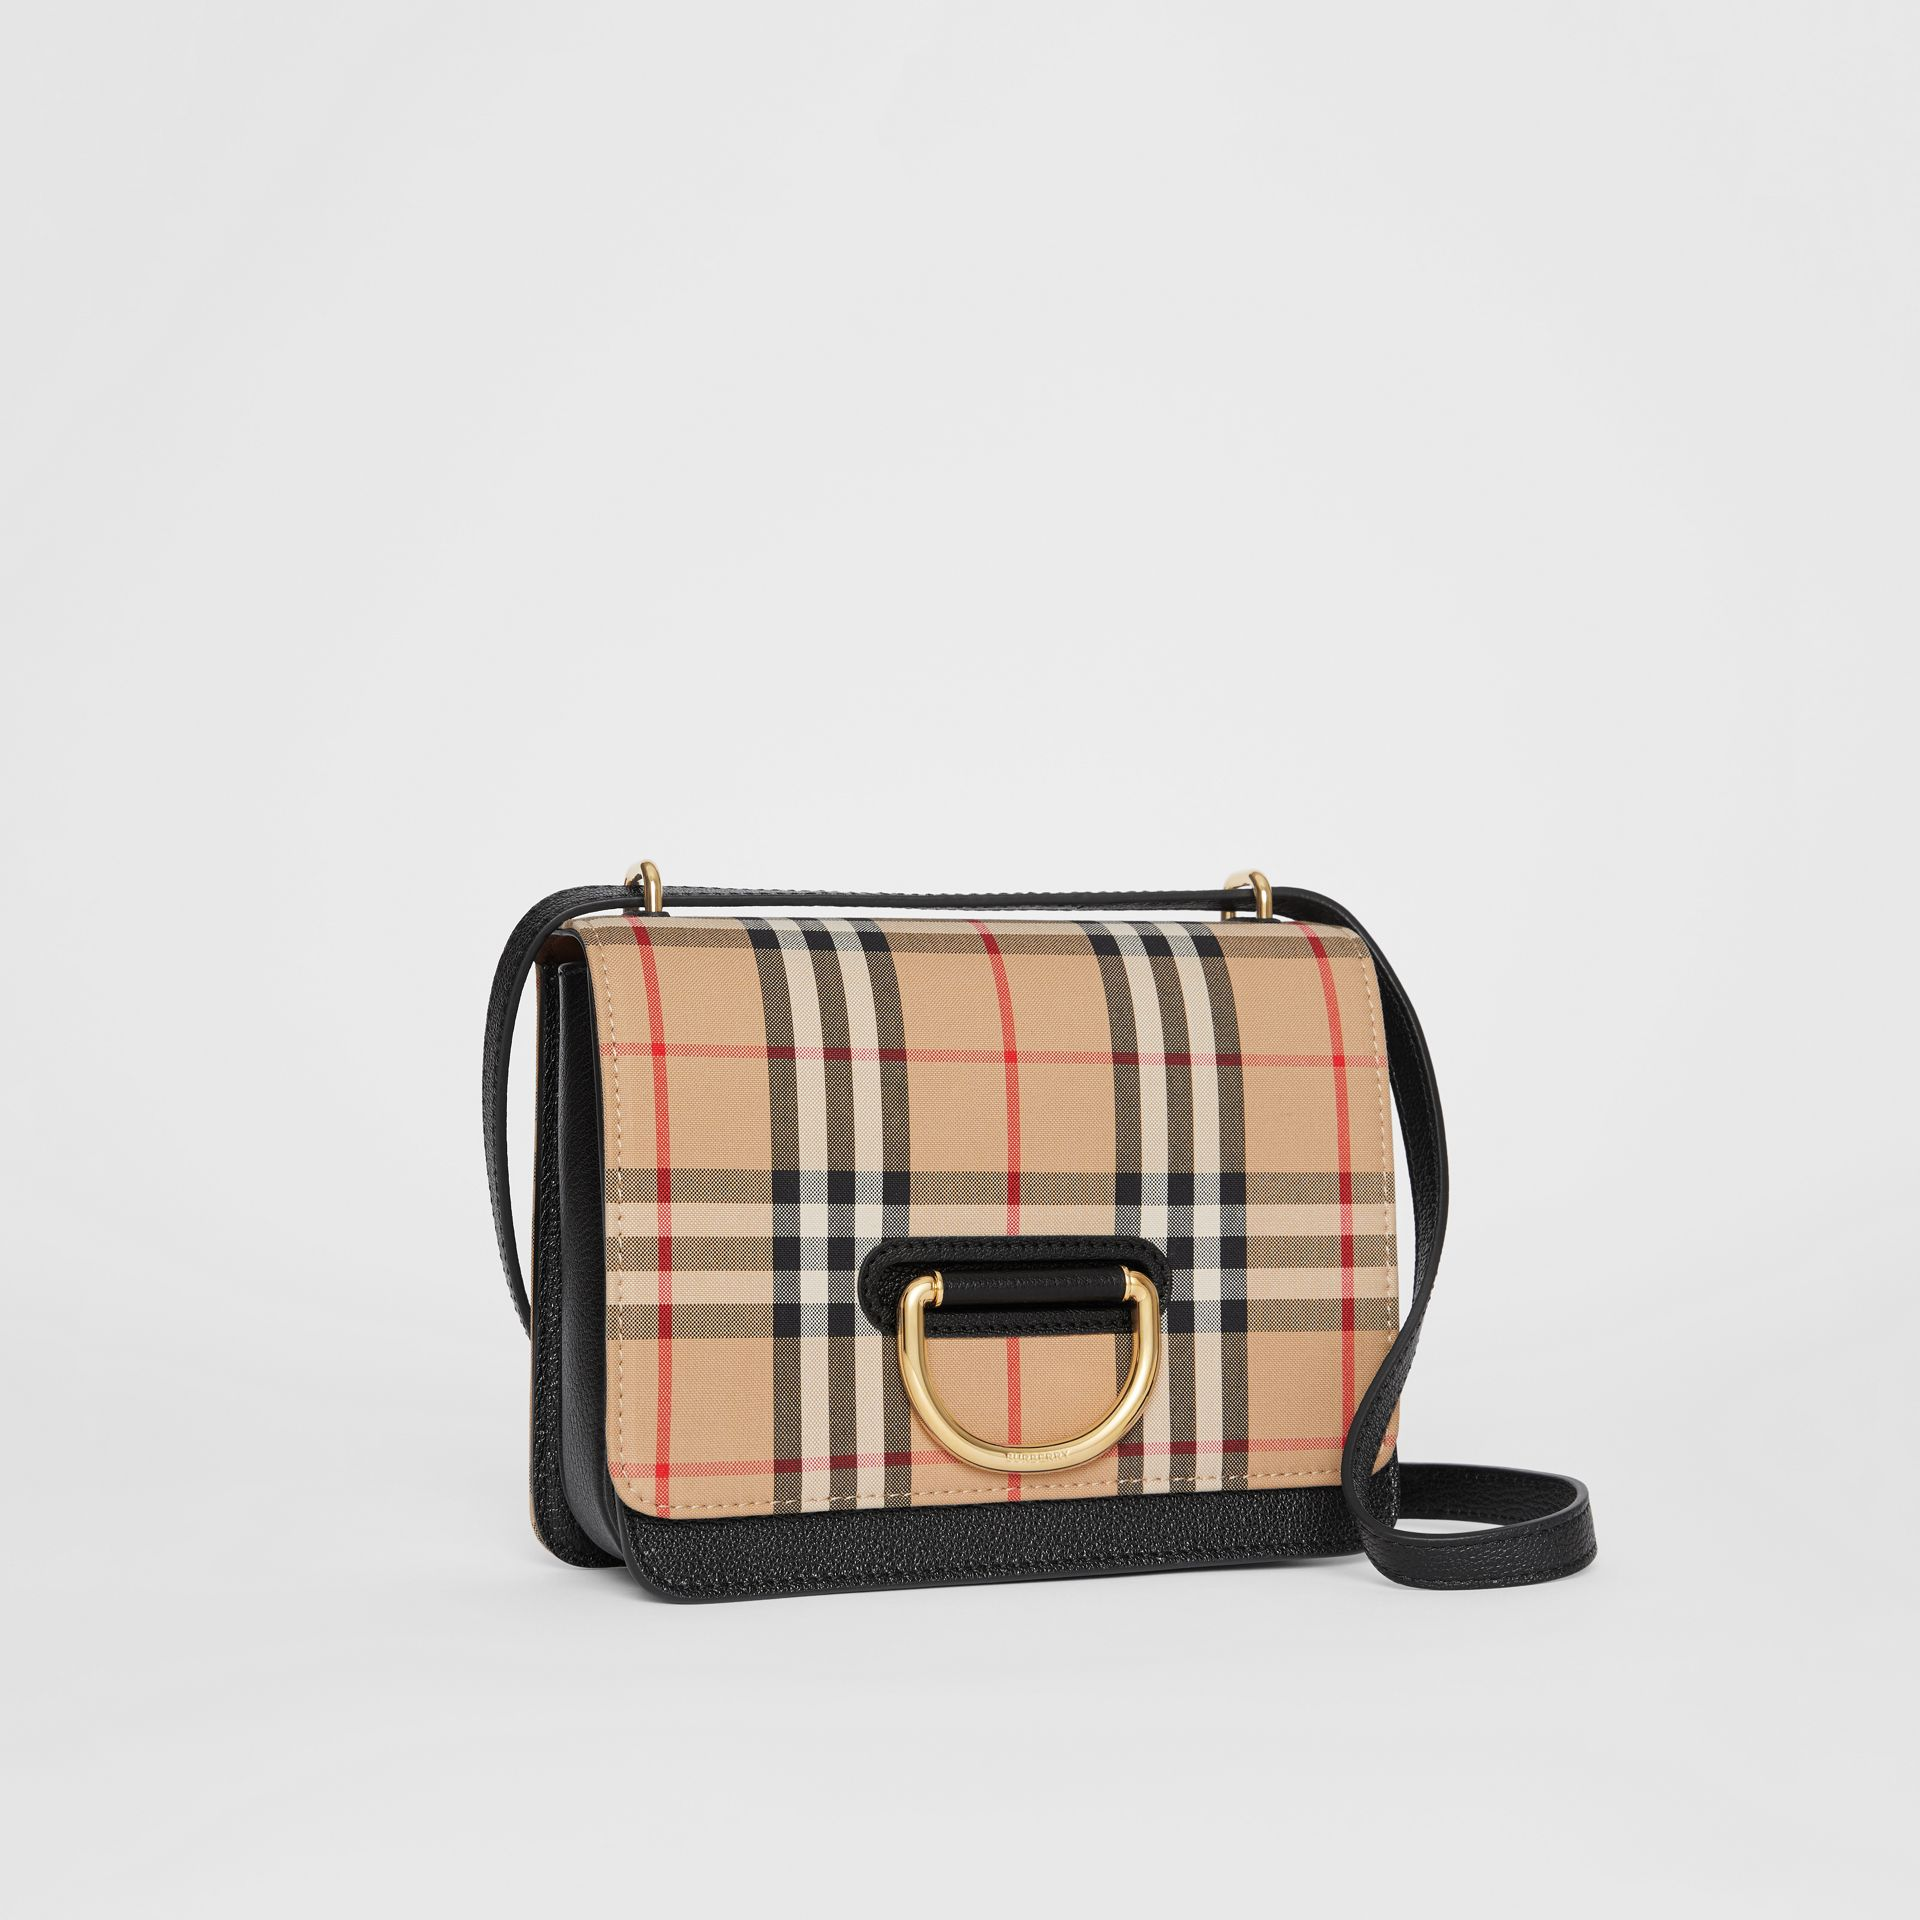 The Small Vintage Check and Leather D-ring Bag in Black - Women | Burberry - gallery image 9